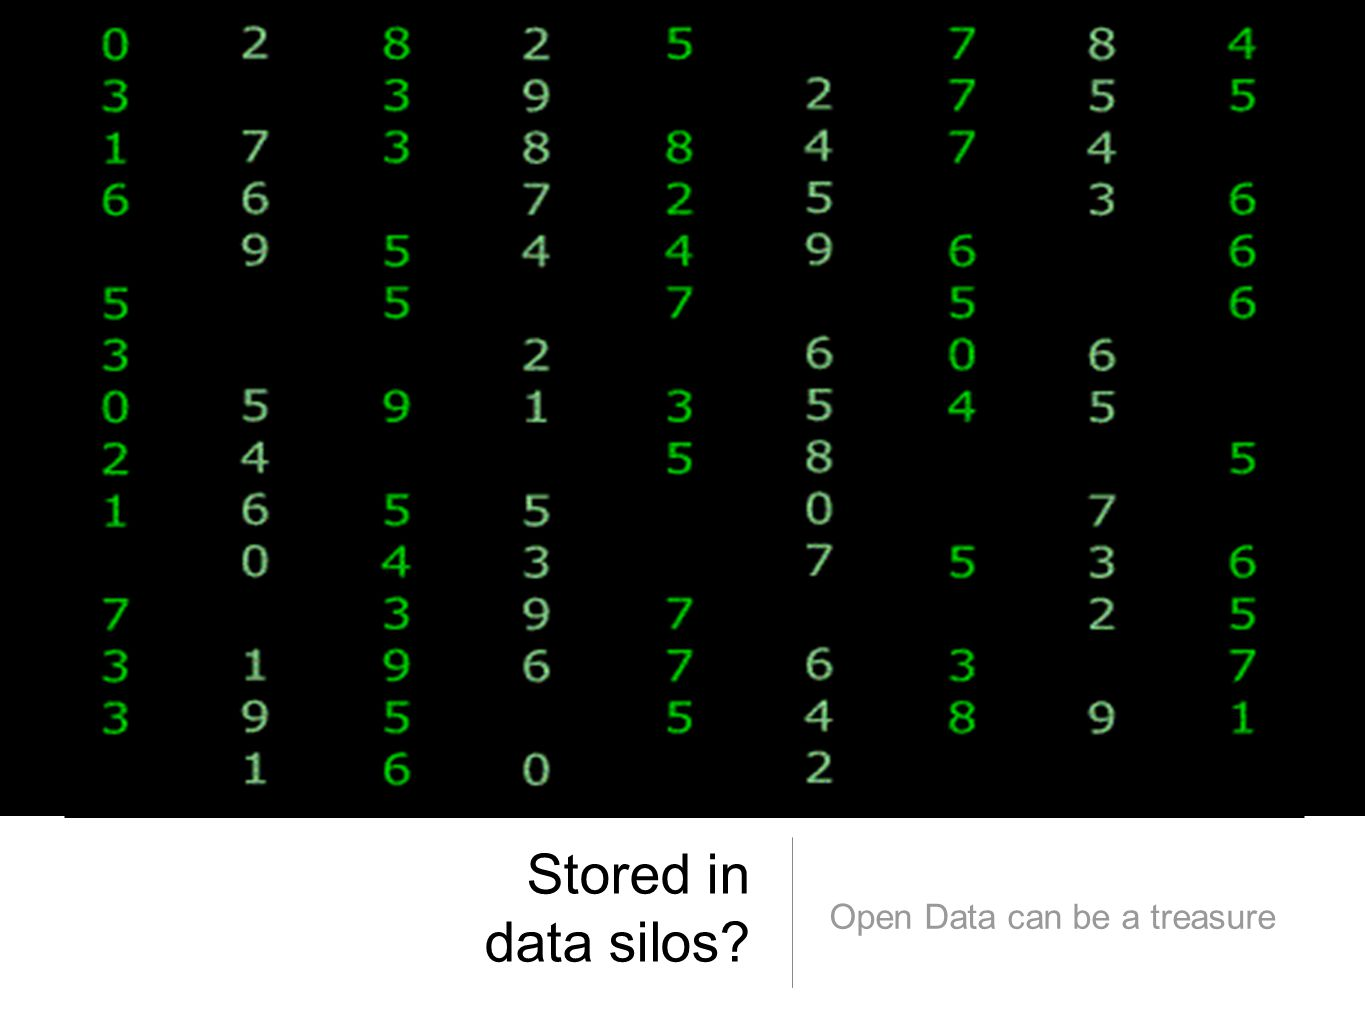 Stored in data silos? Open Data can be a treasure